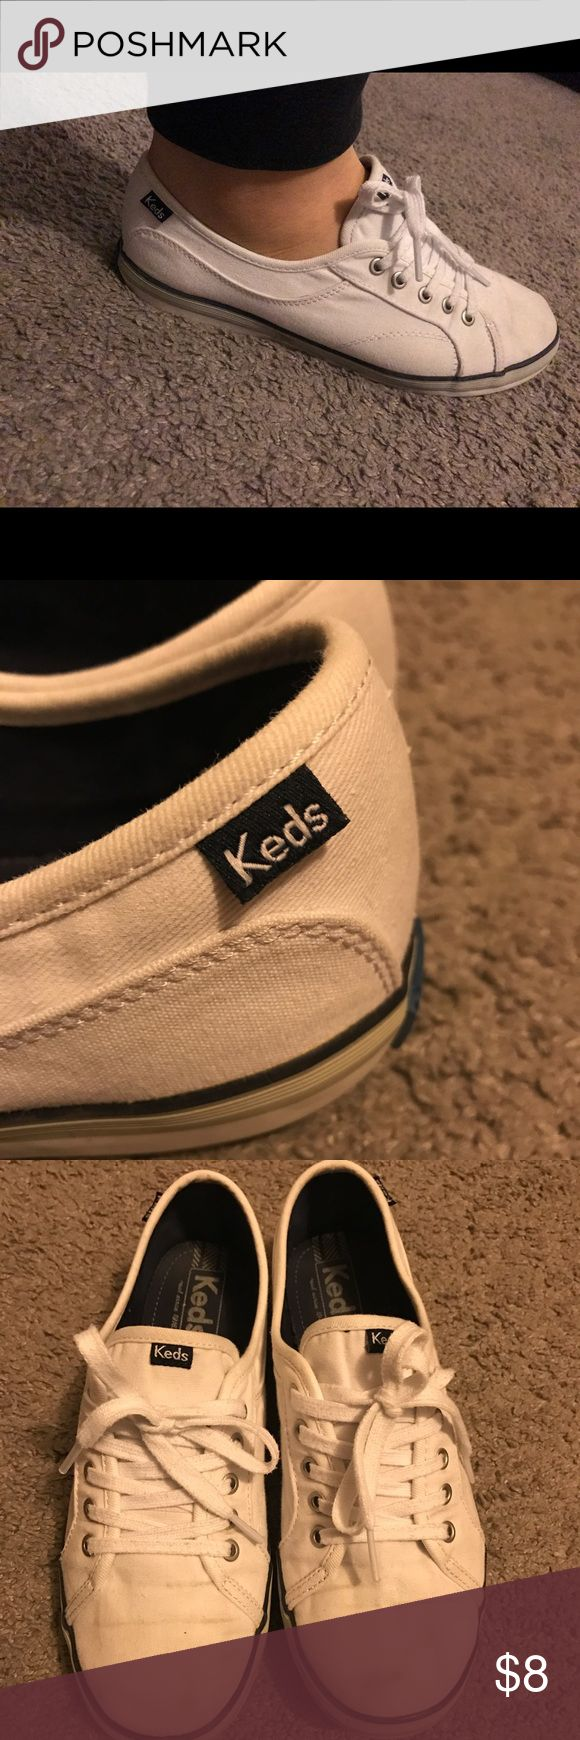 Keds Sneakers Keds Sneakers size 8 Keds Shoes Sneakers